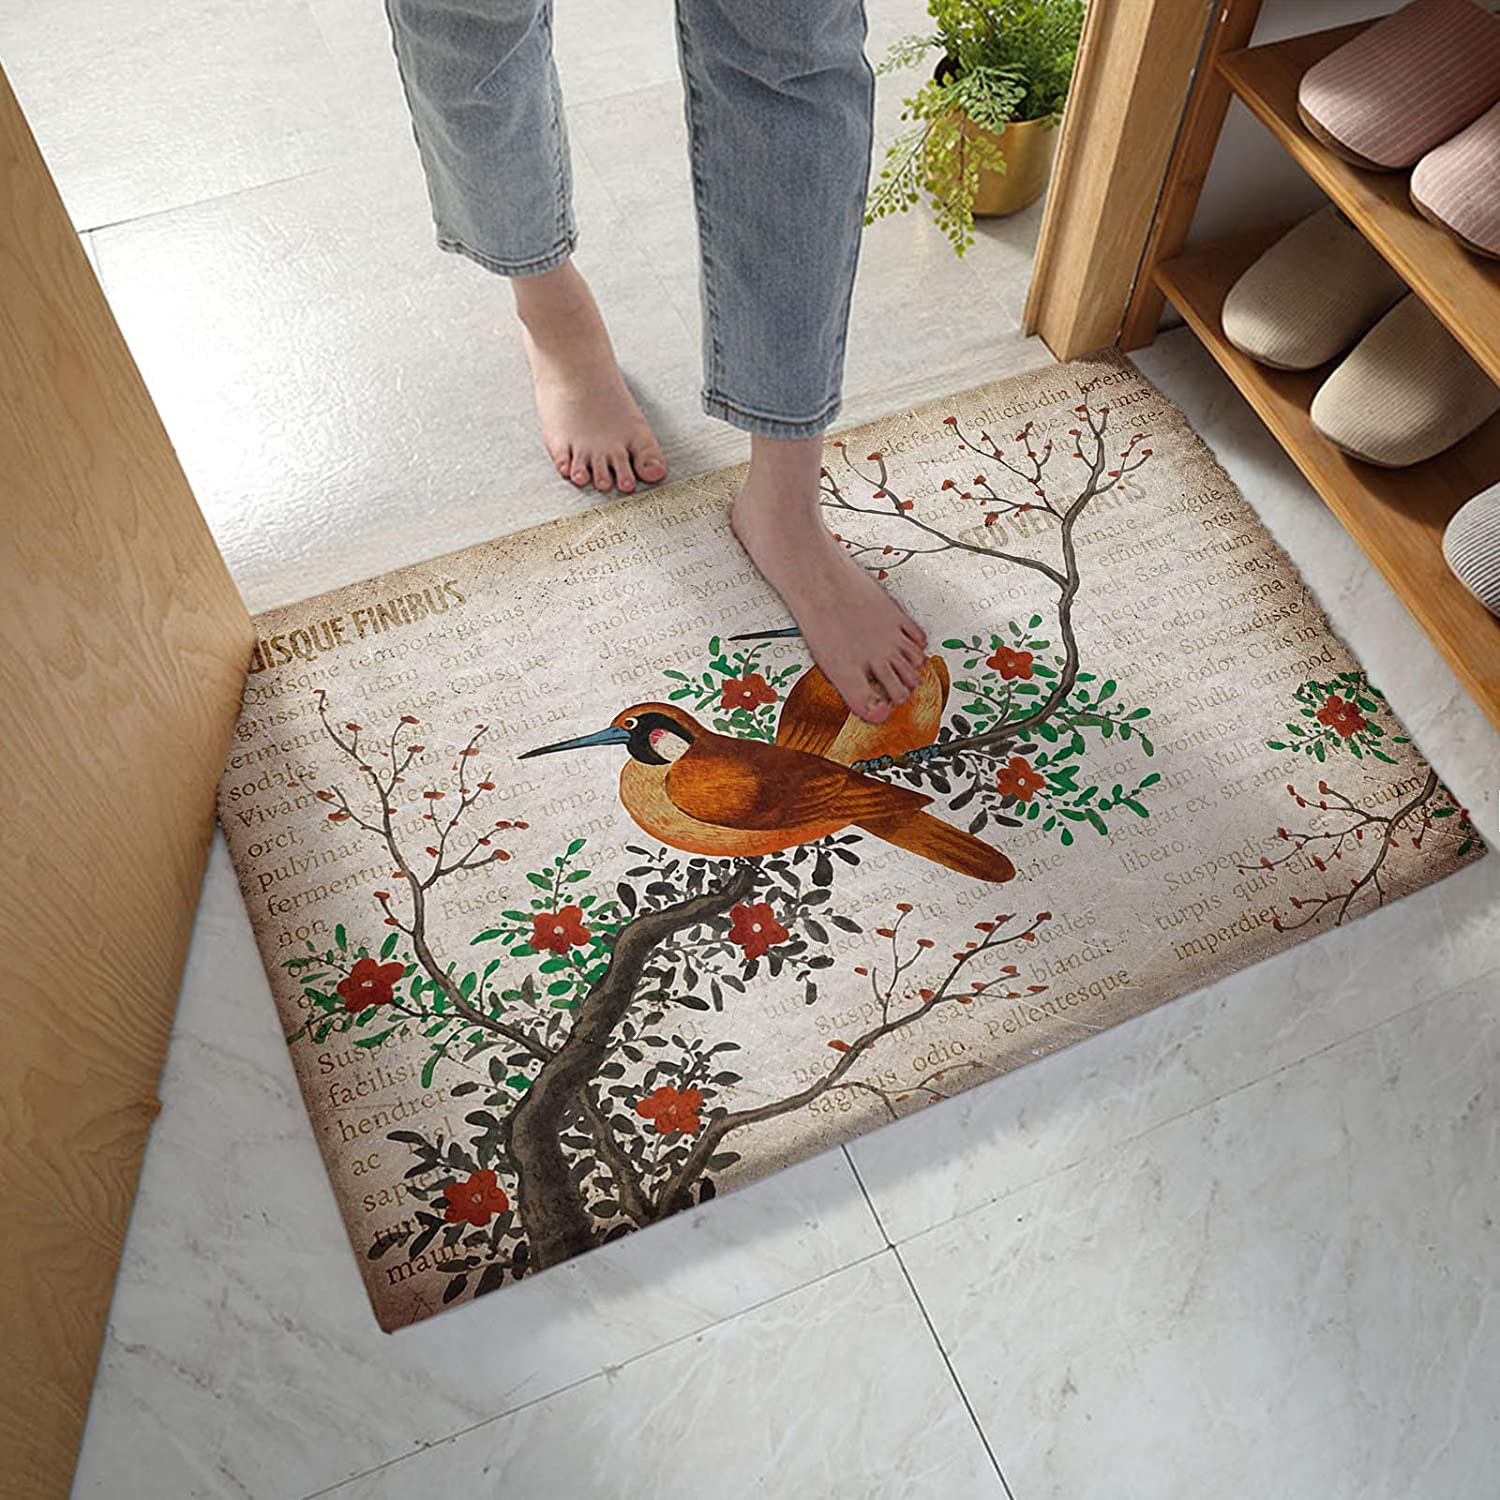 LBHAUSE Bathroom Rugs Soft Plush Flower Bath Chinese Style Mat Max 53% OFF Quantity limited